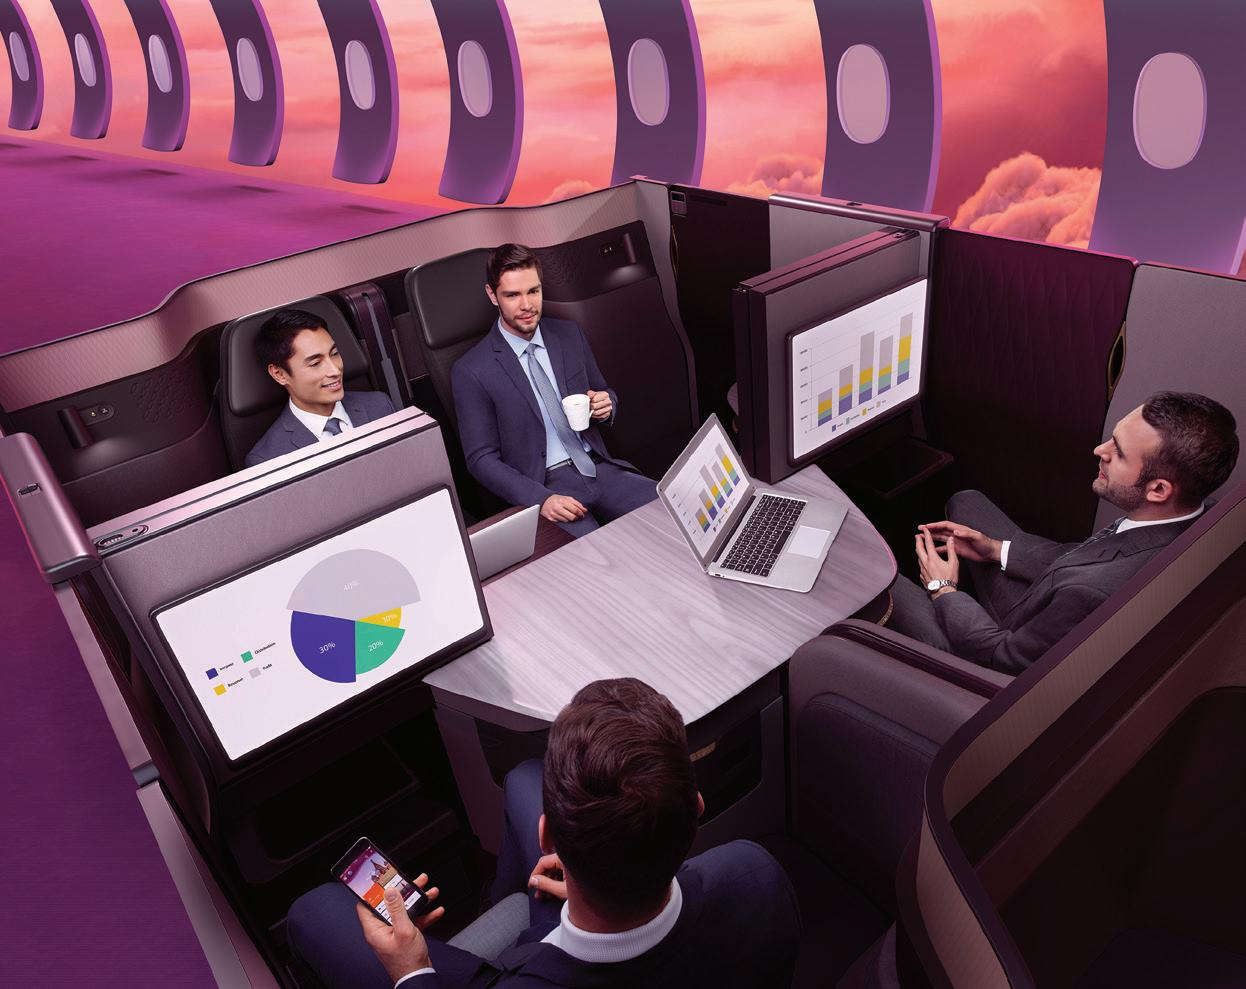 Page 20 of CONNECTING ABOVE THE CLOUDS Qatar Airways is the first airline in the Middle East to select Gogo 2Ku for its inflight connectivity system